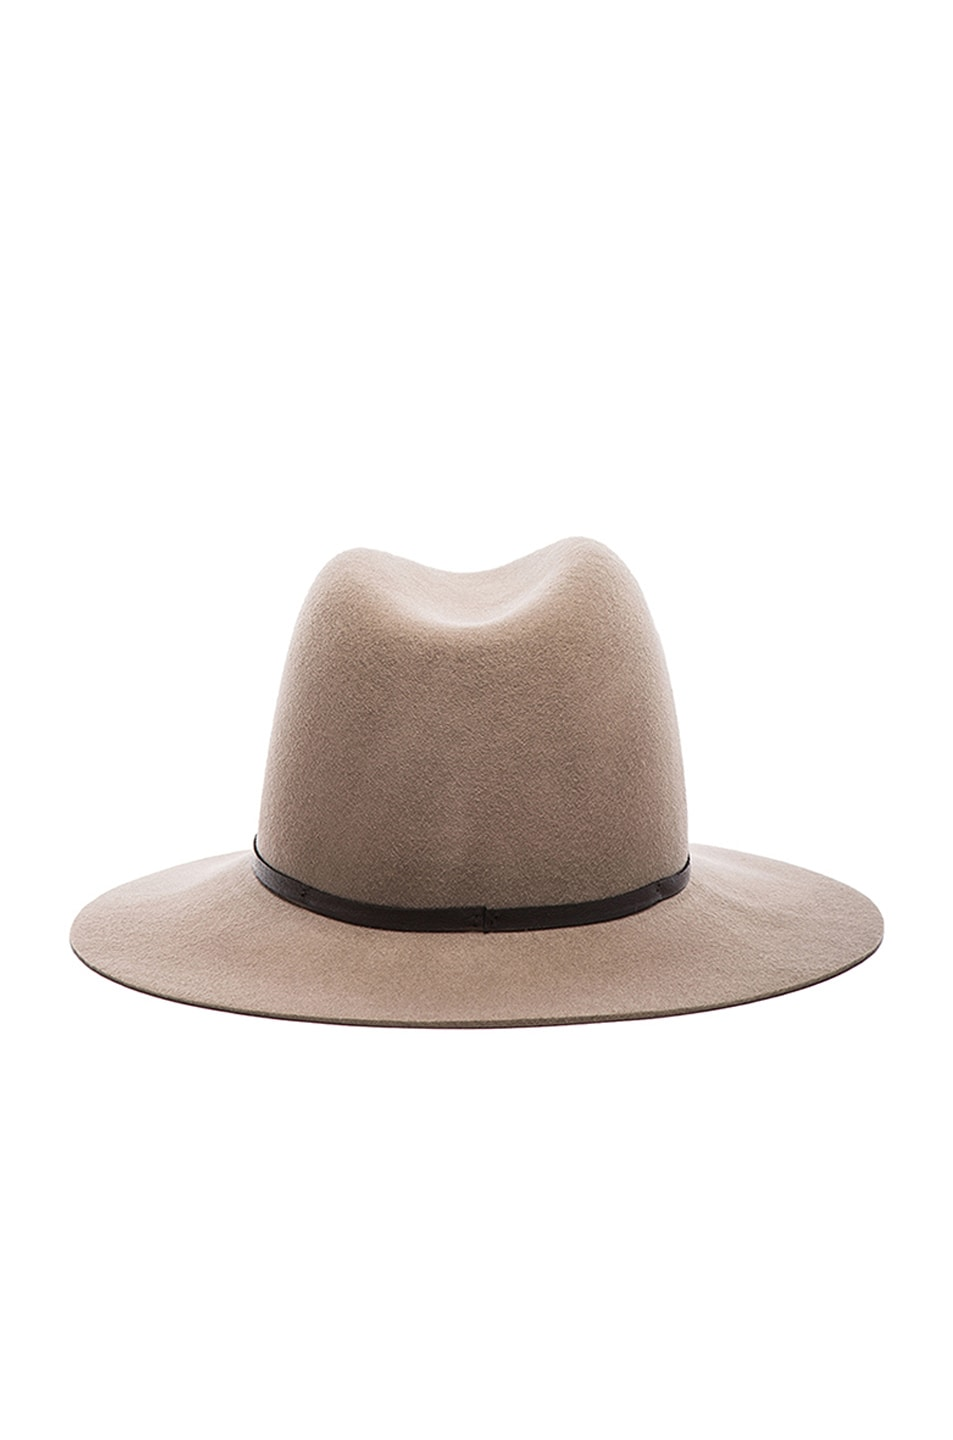 Image 5 of Janessa Leone Lola Wool Felt Hat in Camel